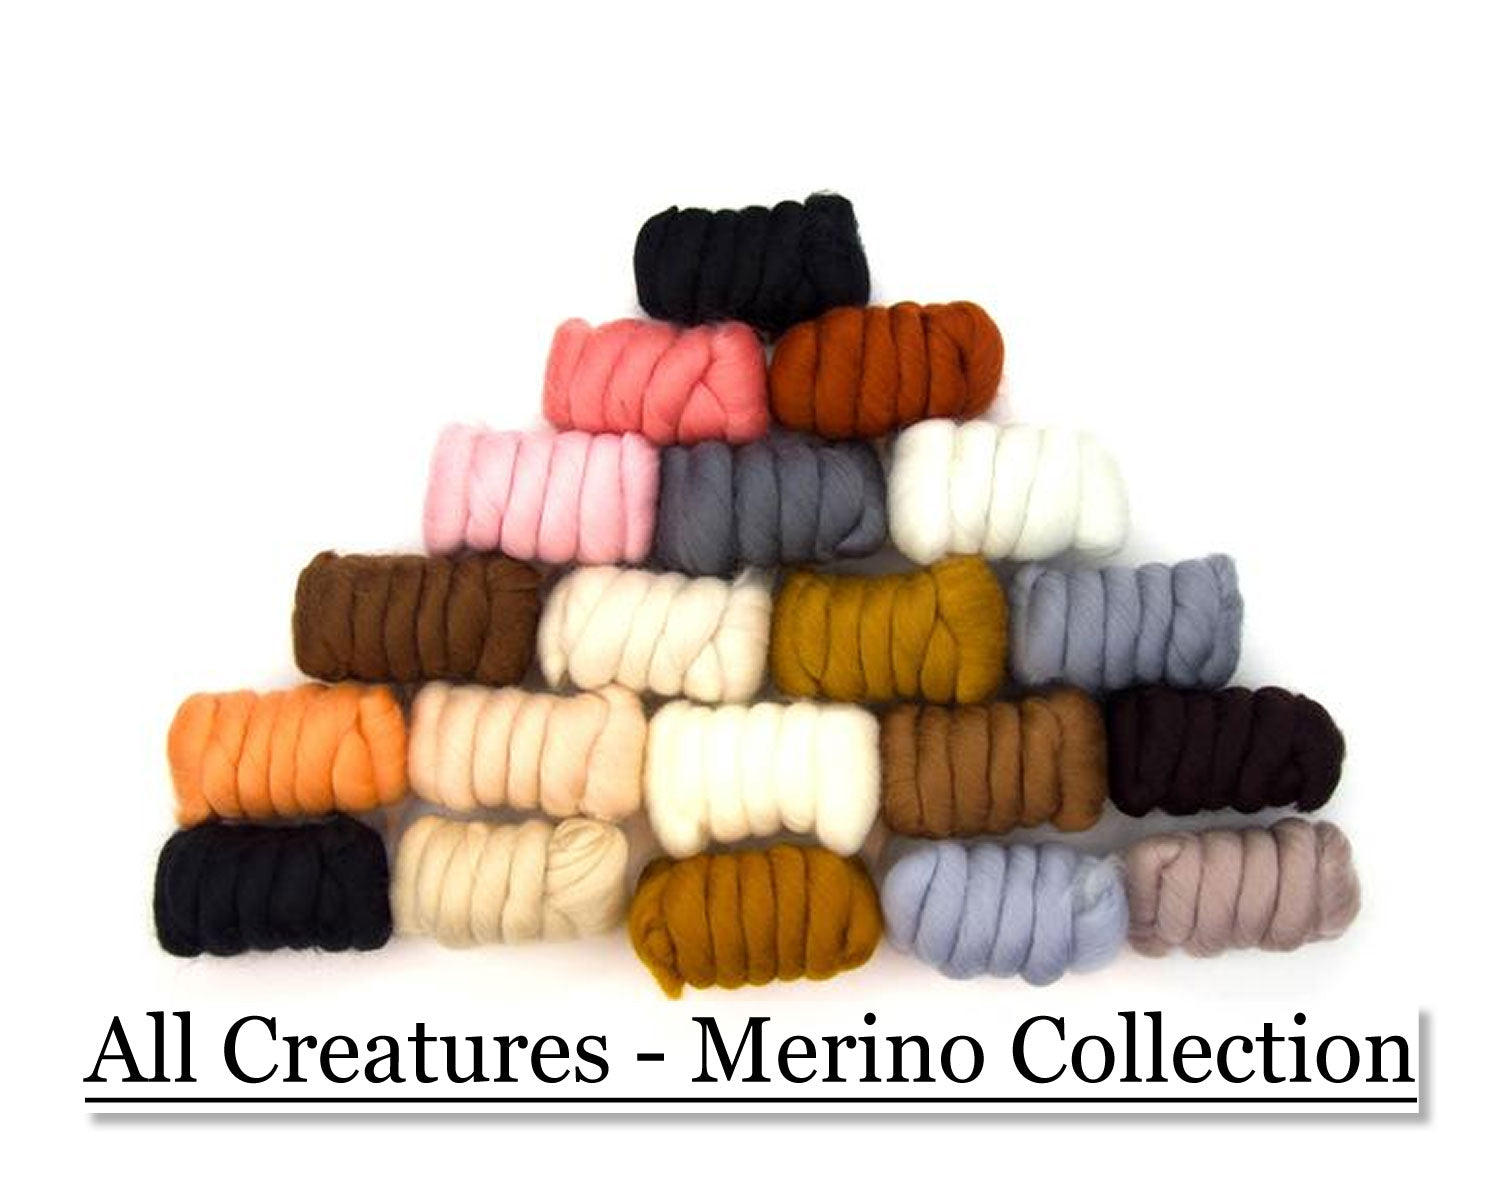 All Creatures Merino Collection